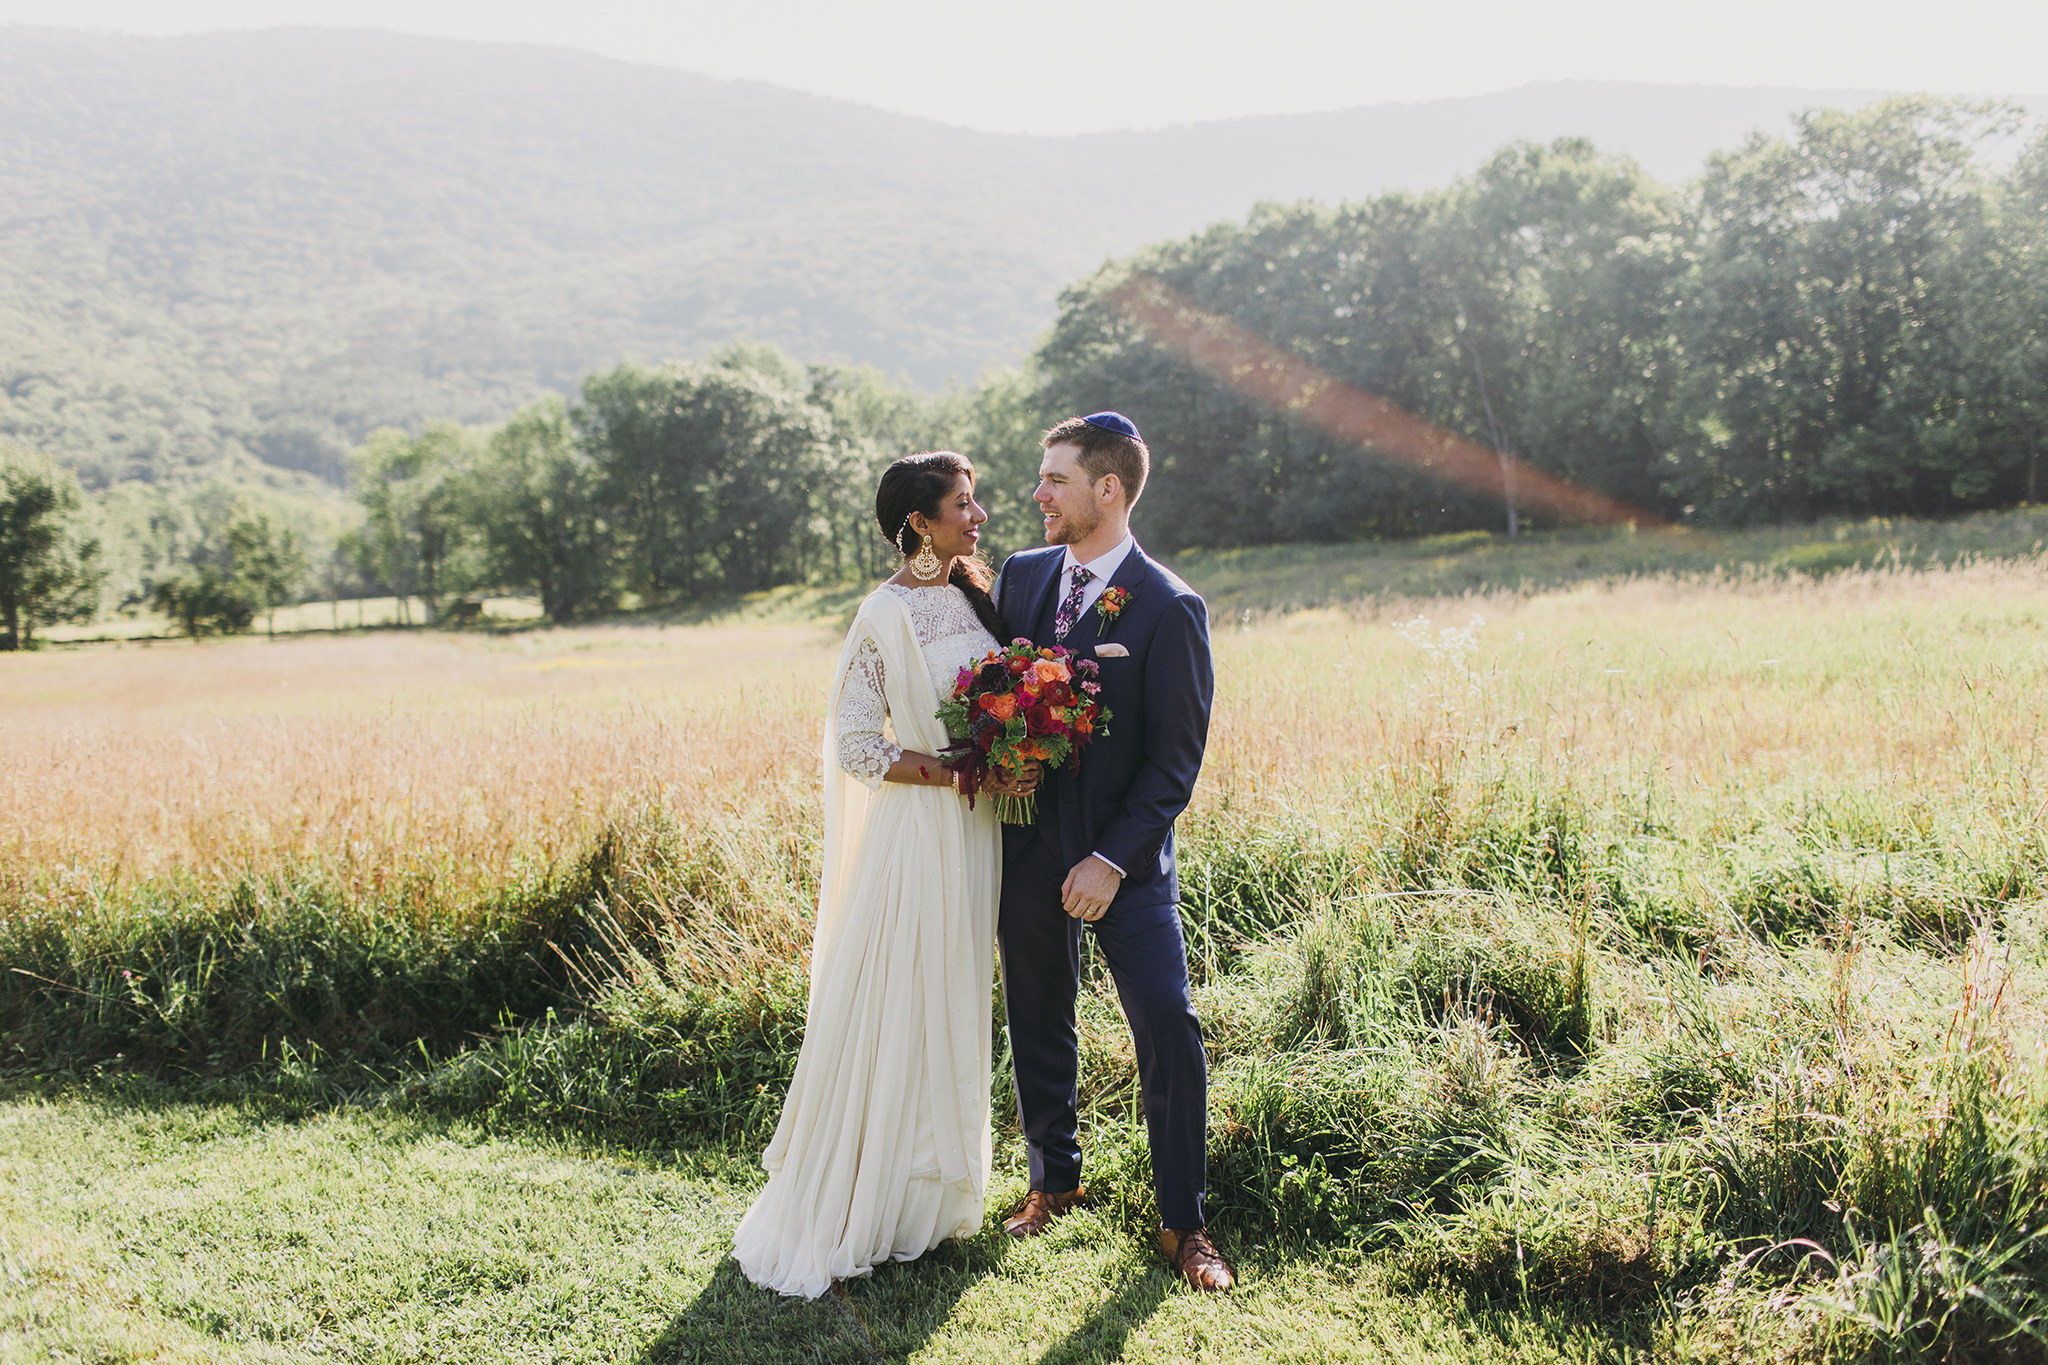 Sharan & Rob's indian-jewish wedding in the CATSKILLS